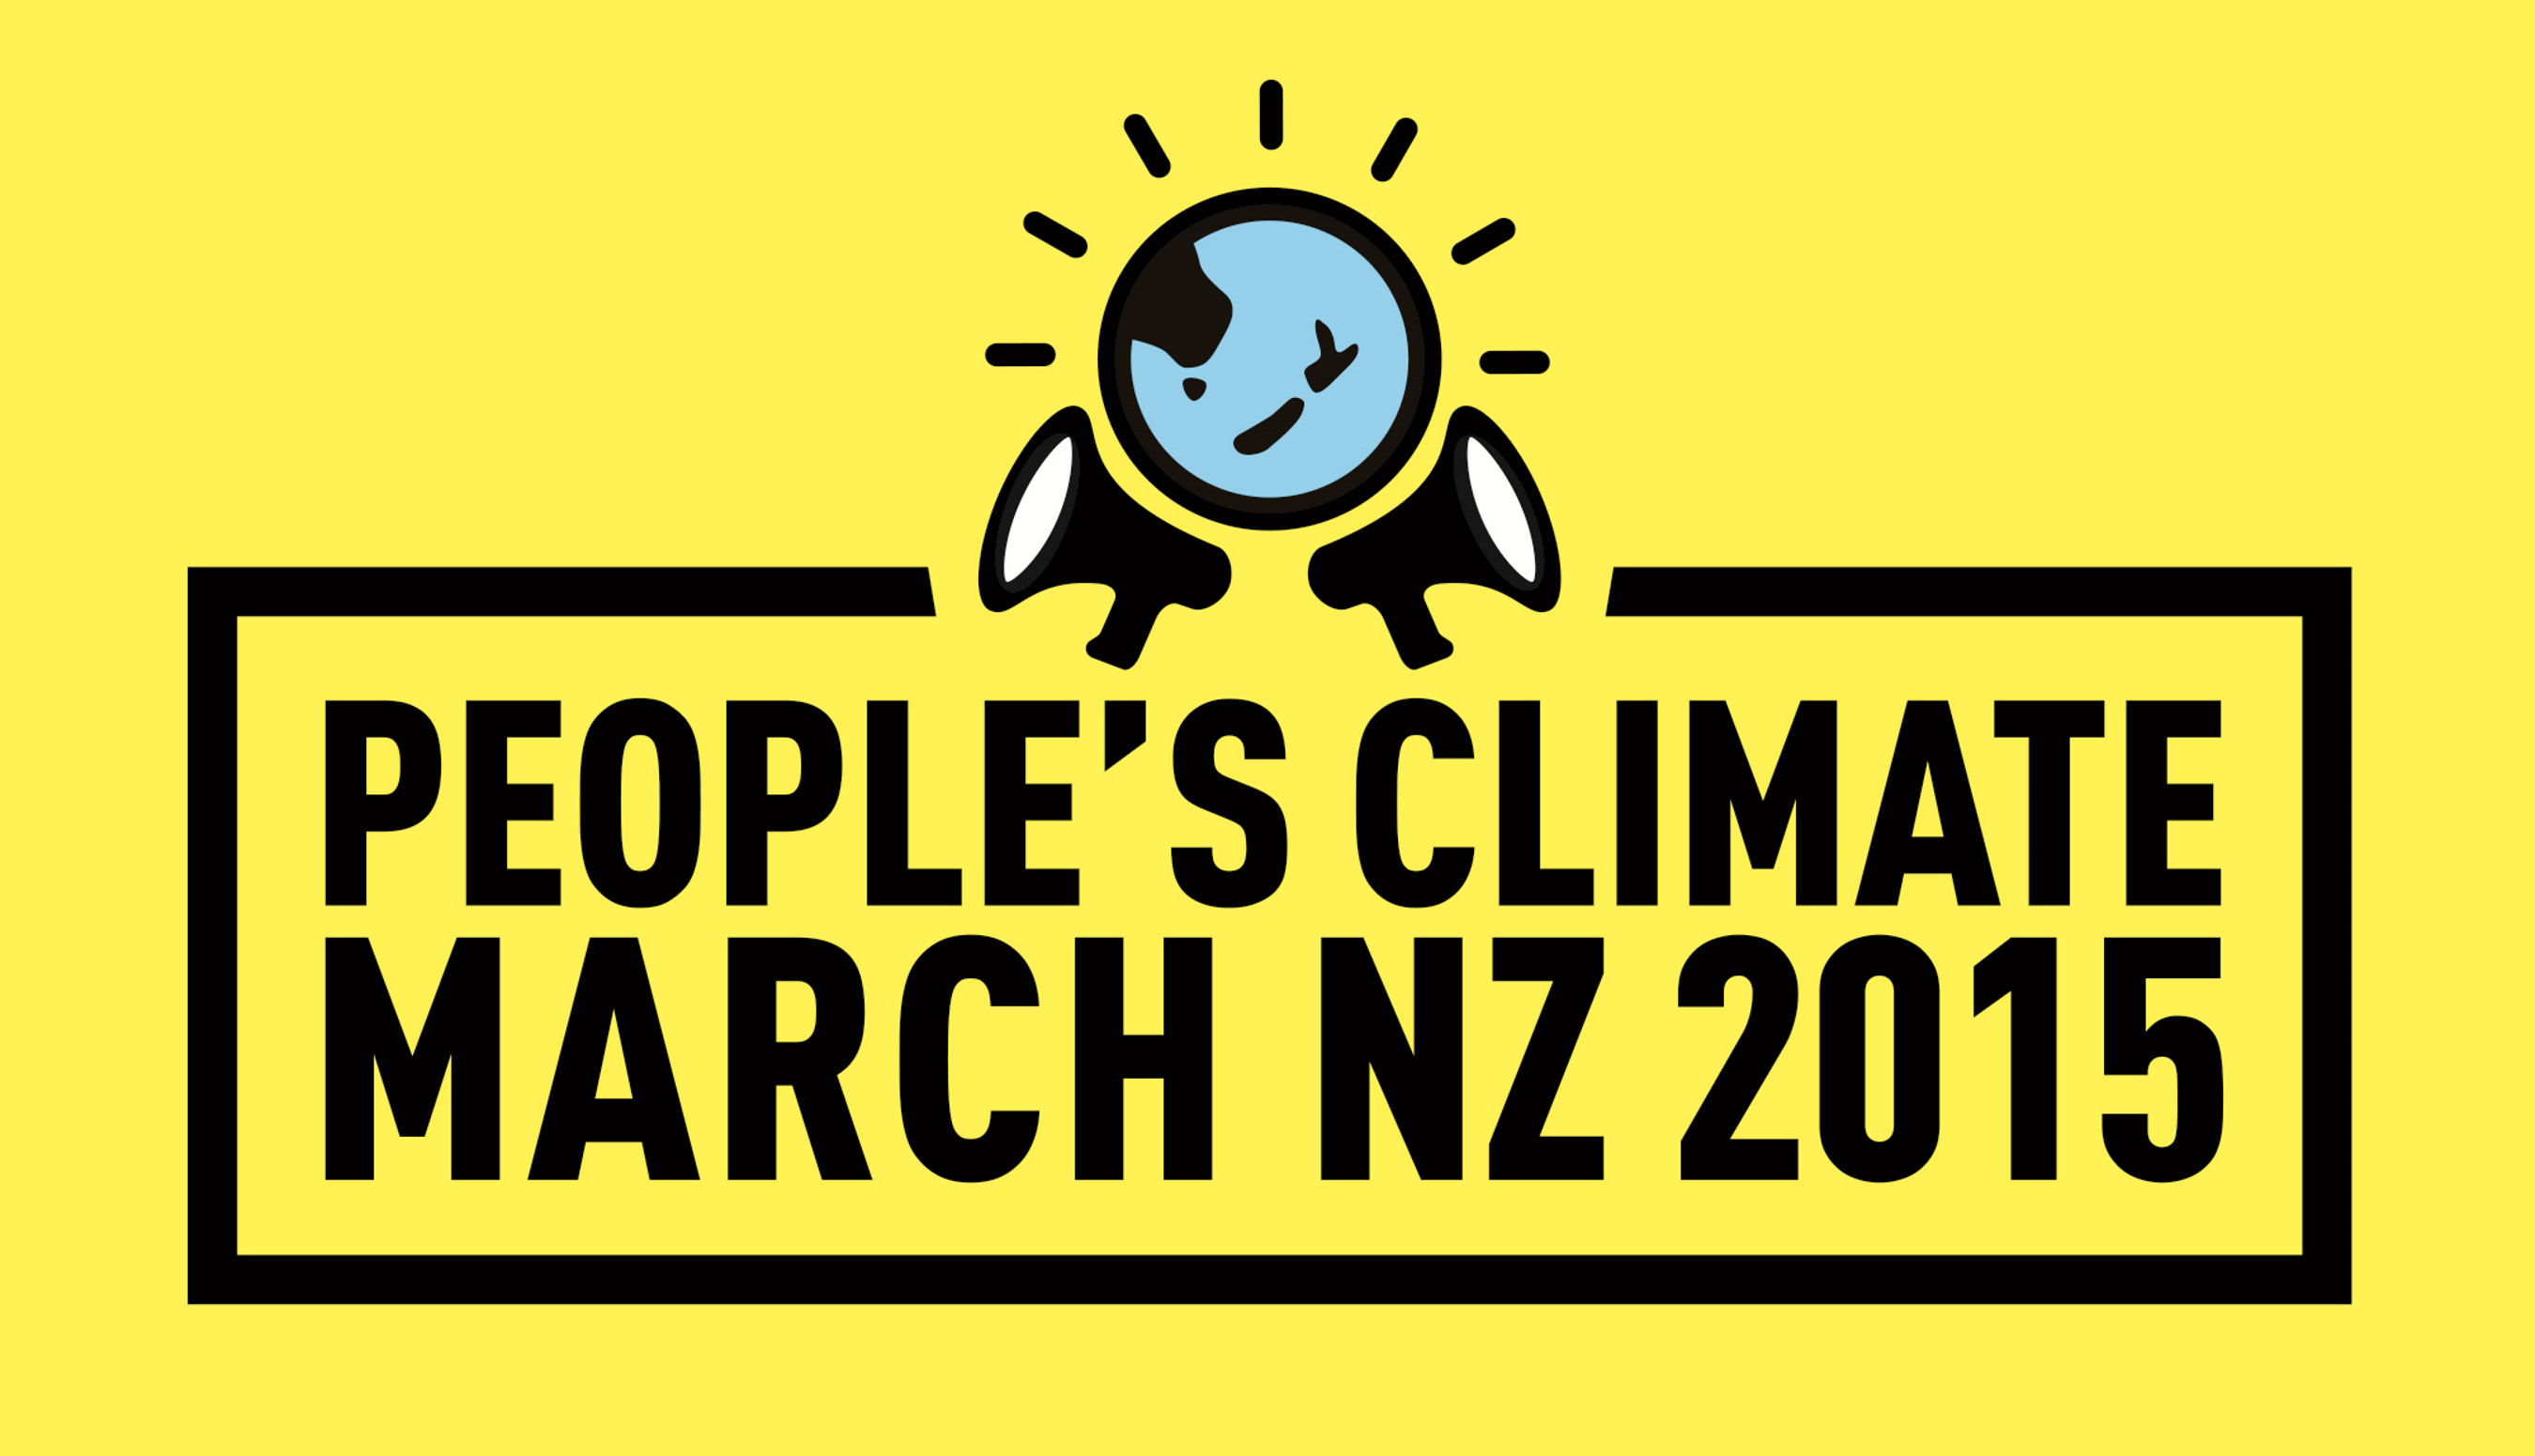 Peoples CLimate MArch Logo